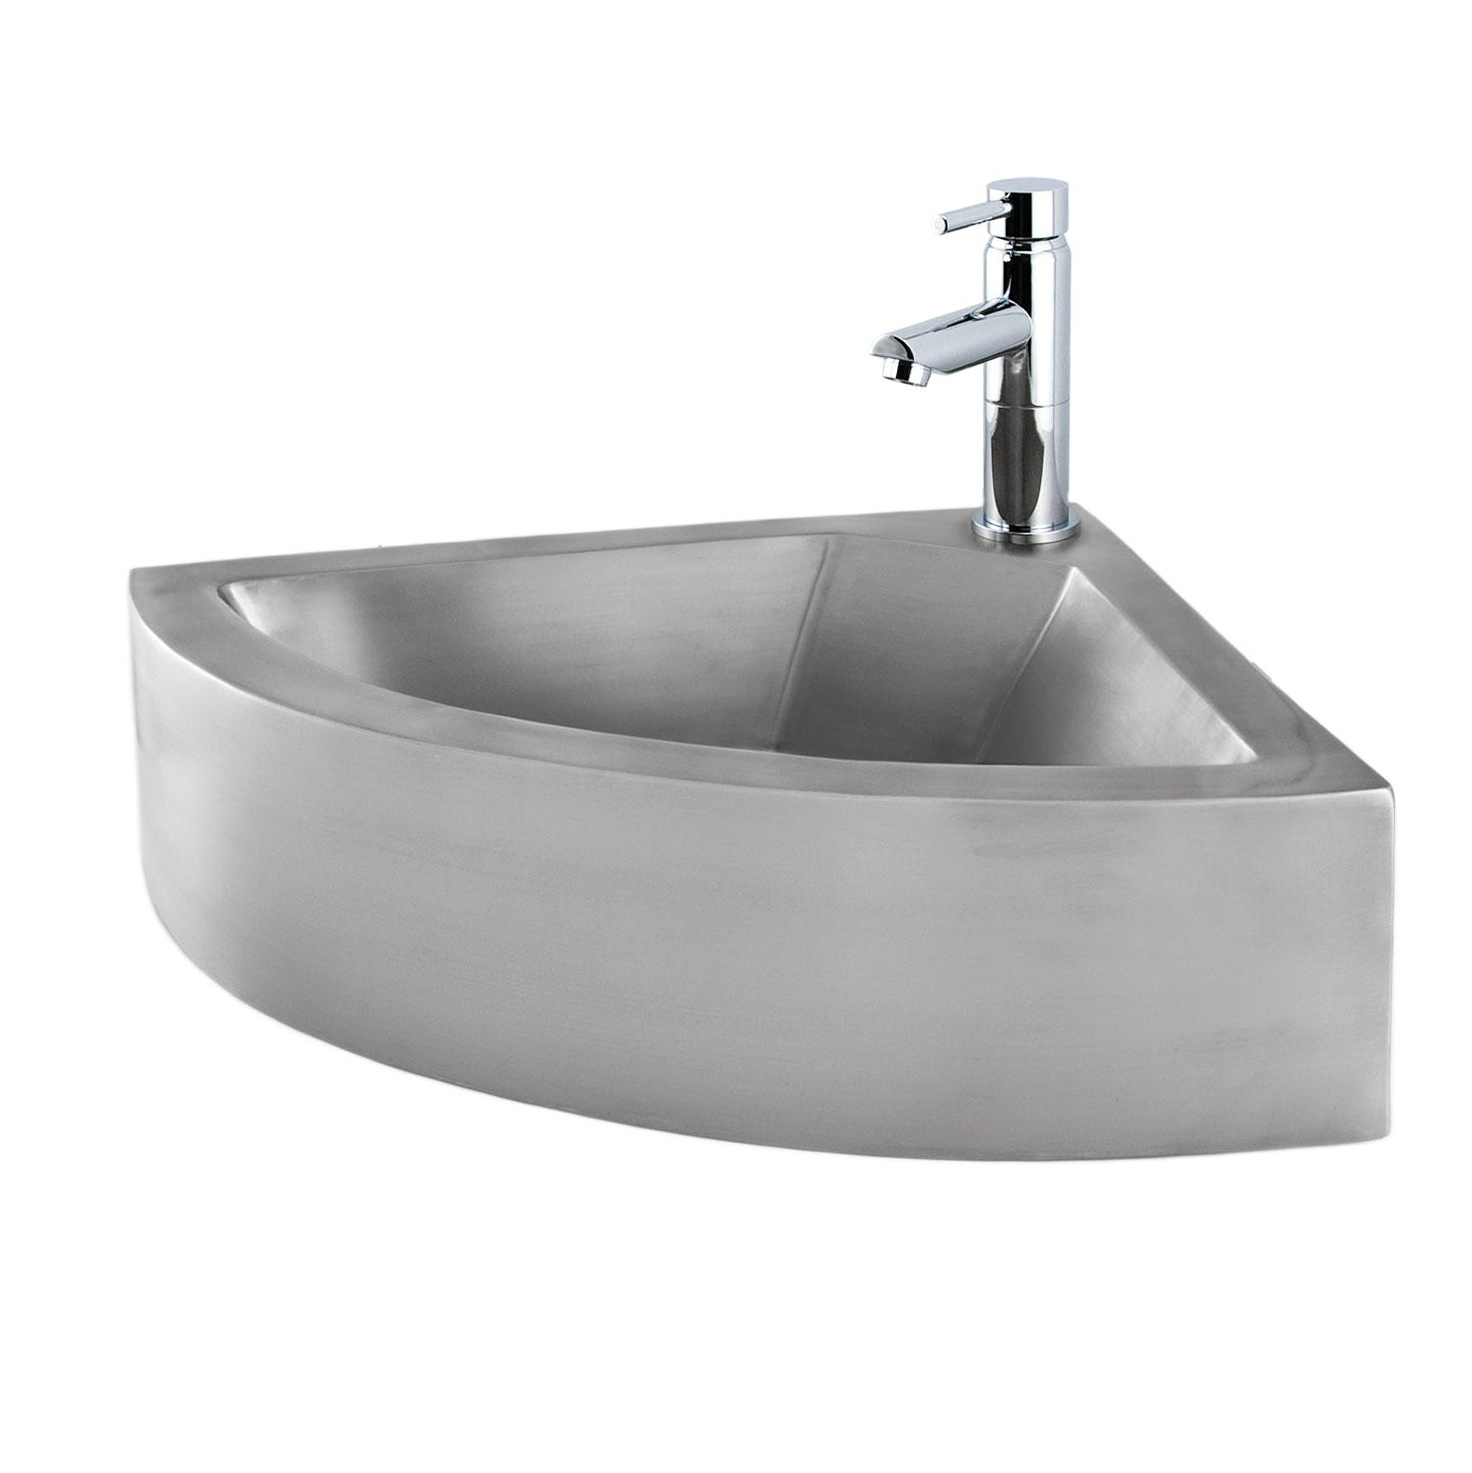 Corner Kitchen Sinks Stainless Steel